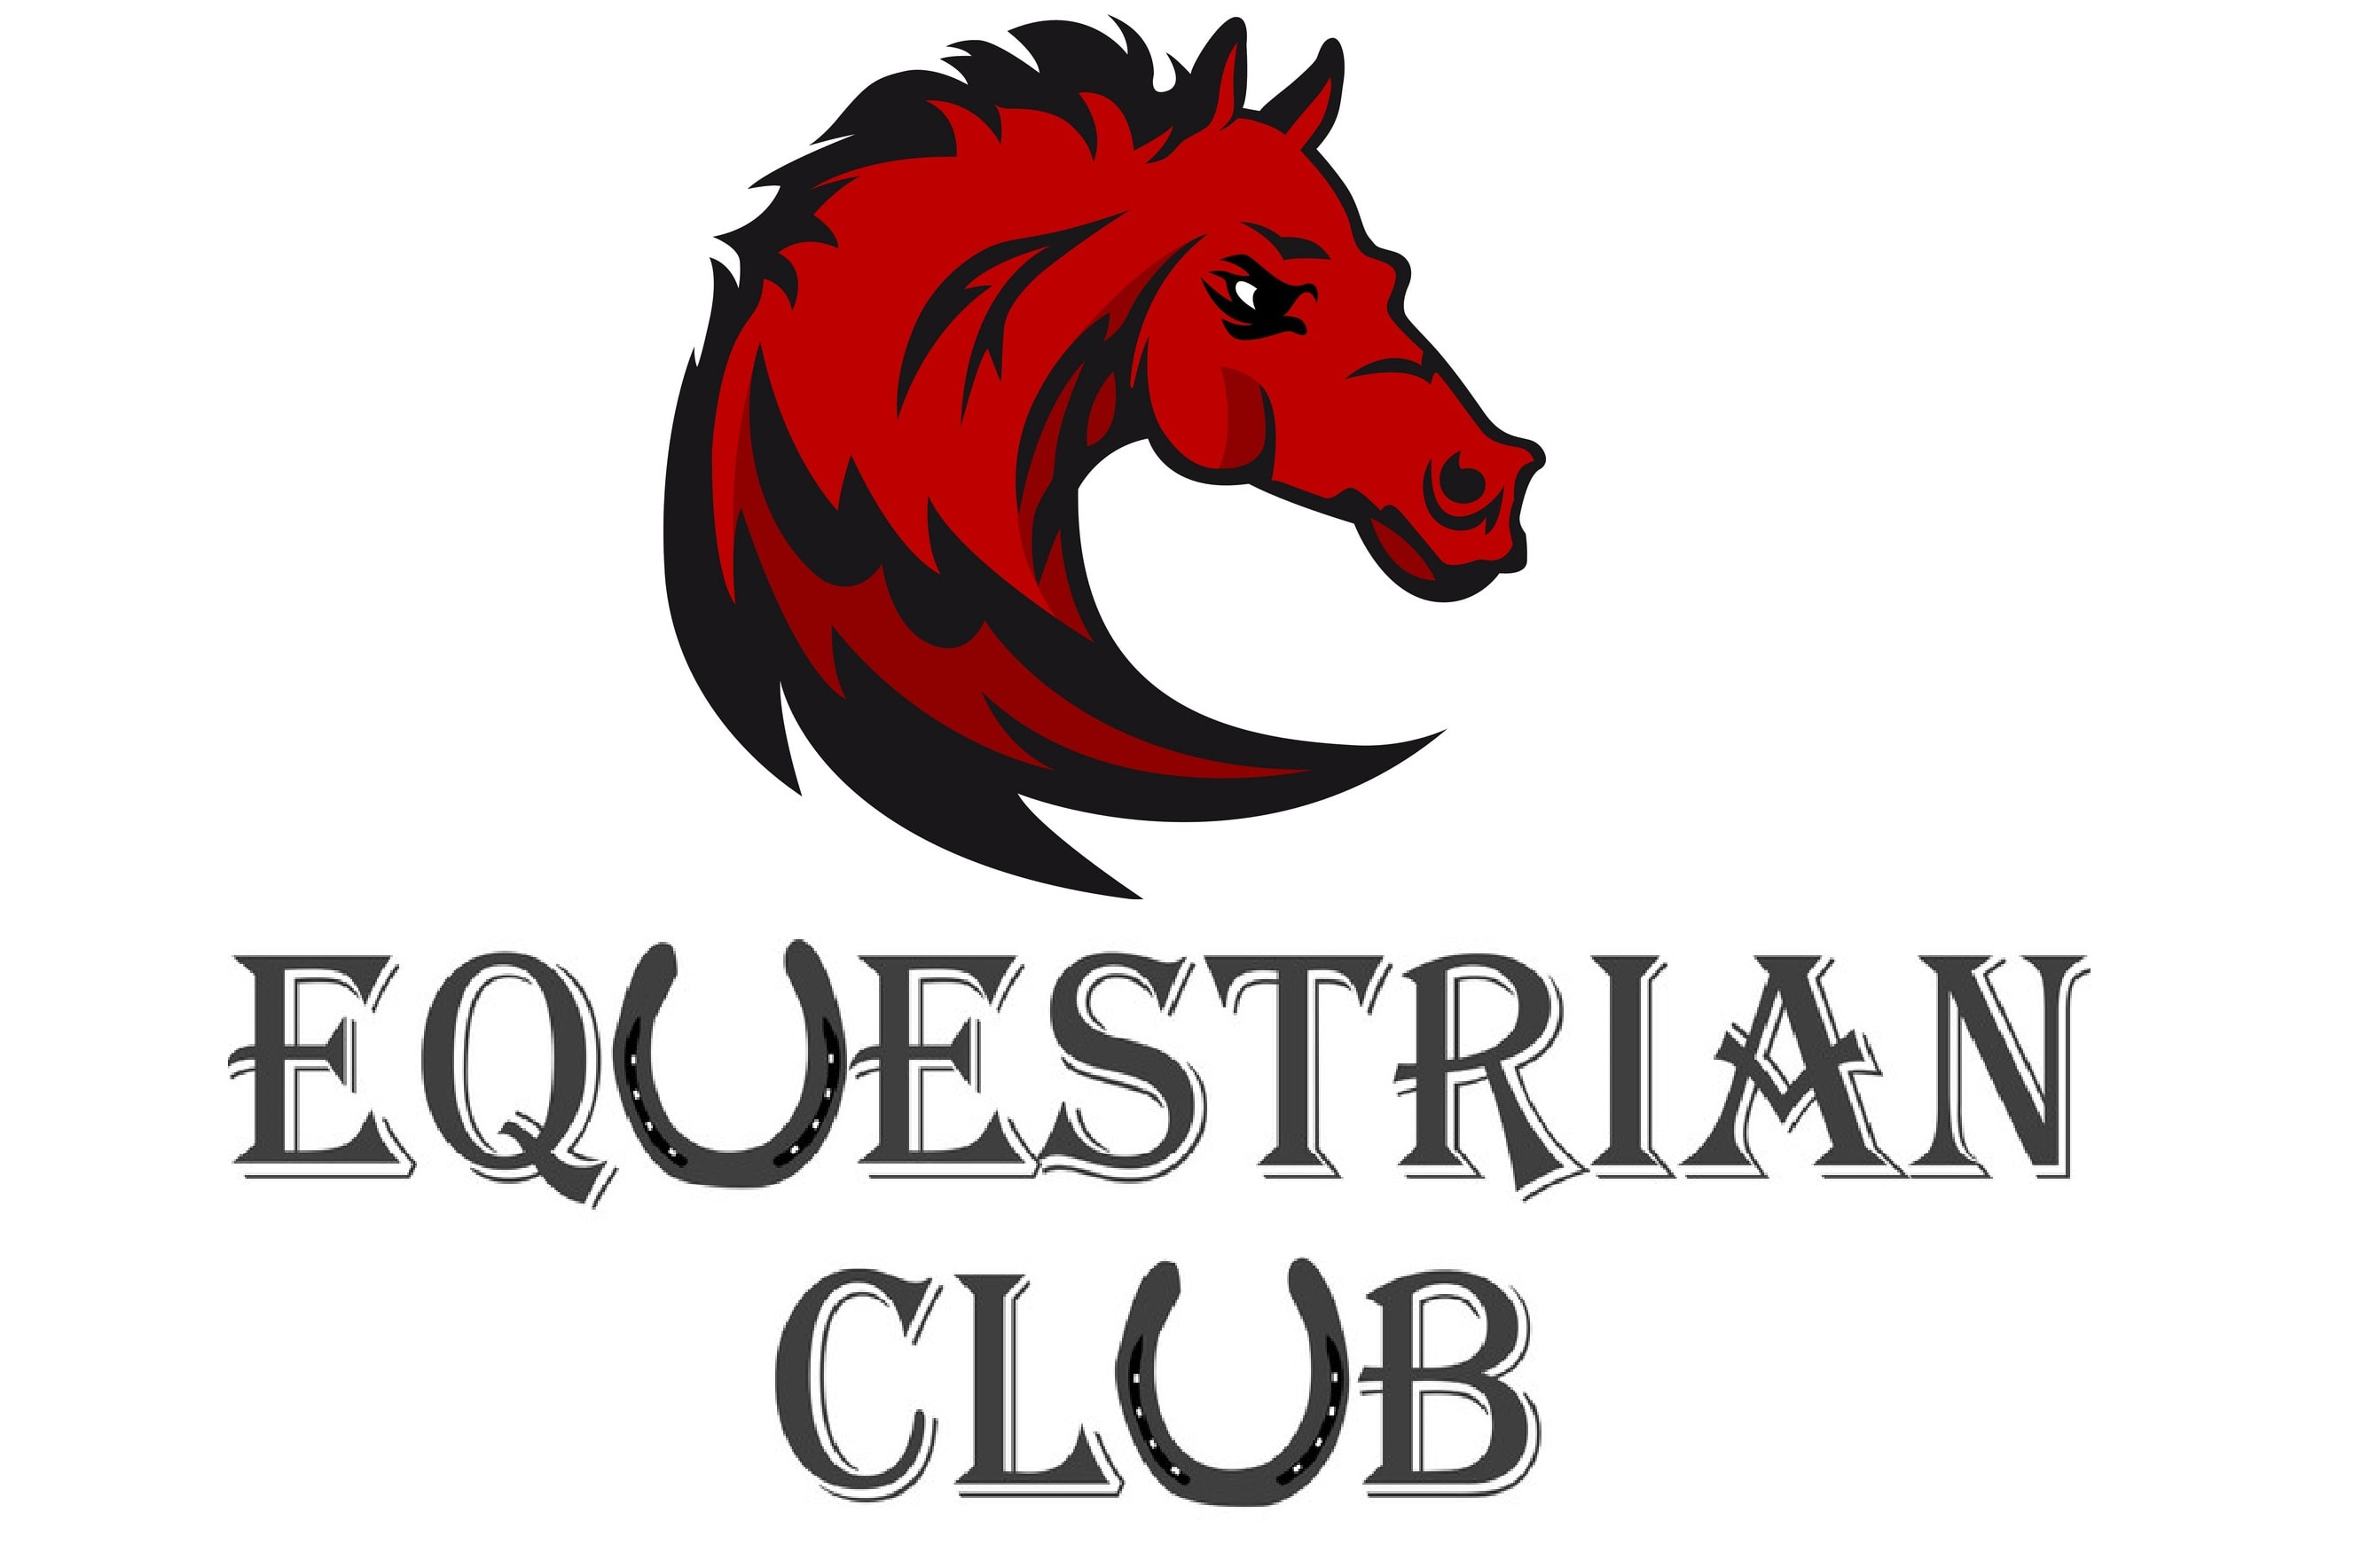 Do Good Looking Creative Equestrian Club Logo Design With Free Source File By Lizqro Crmk